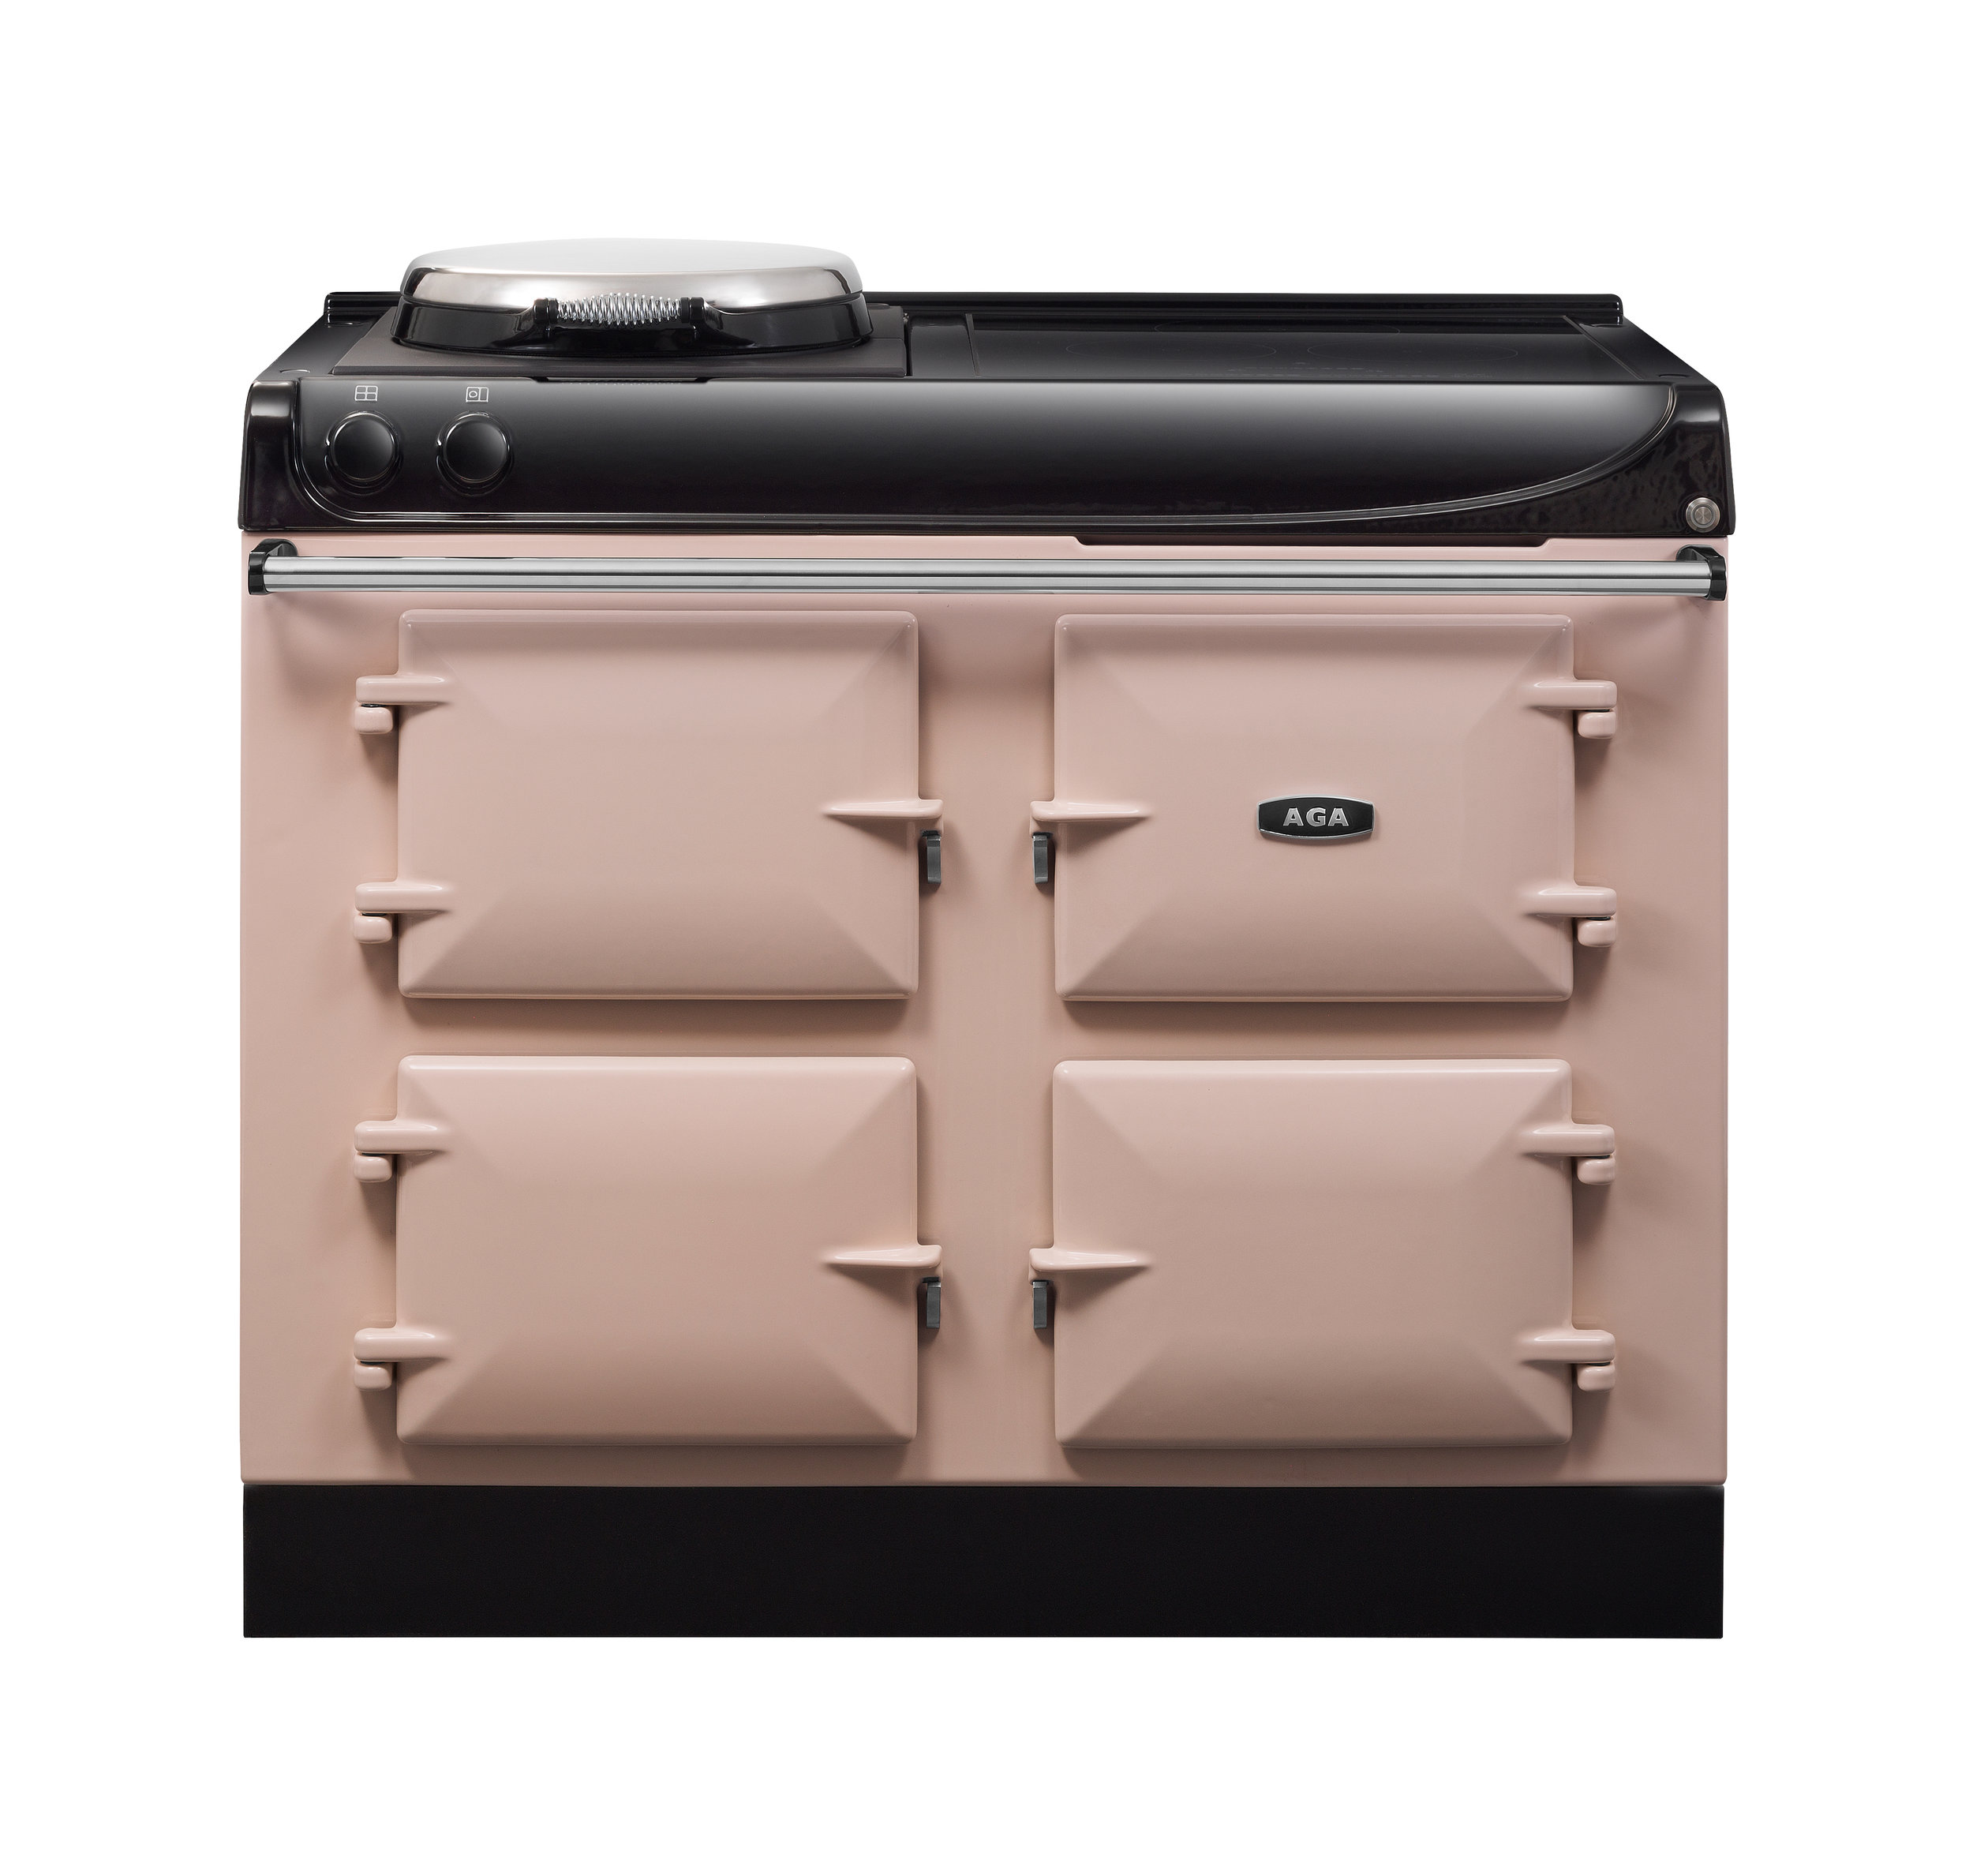 AGA 3 Series 110_Blush(1).jpg